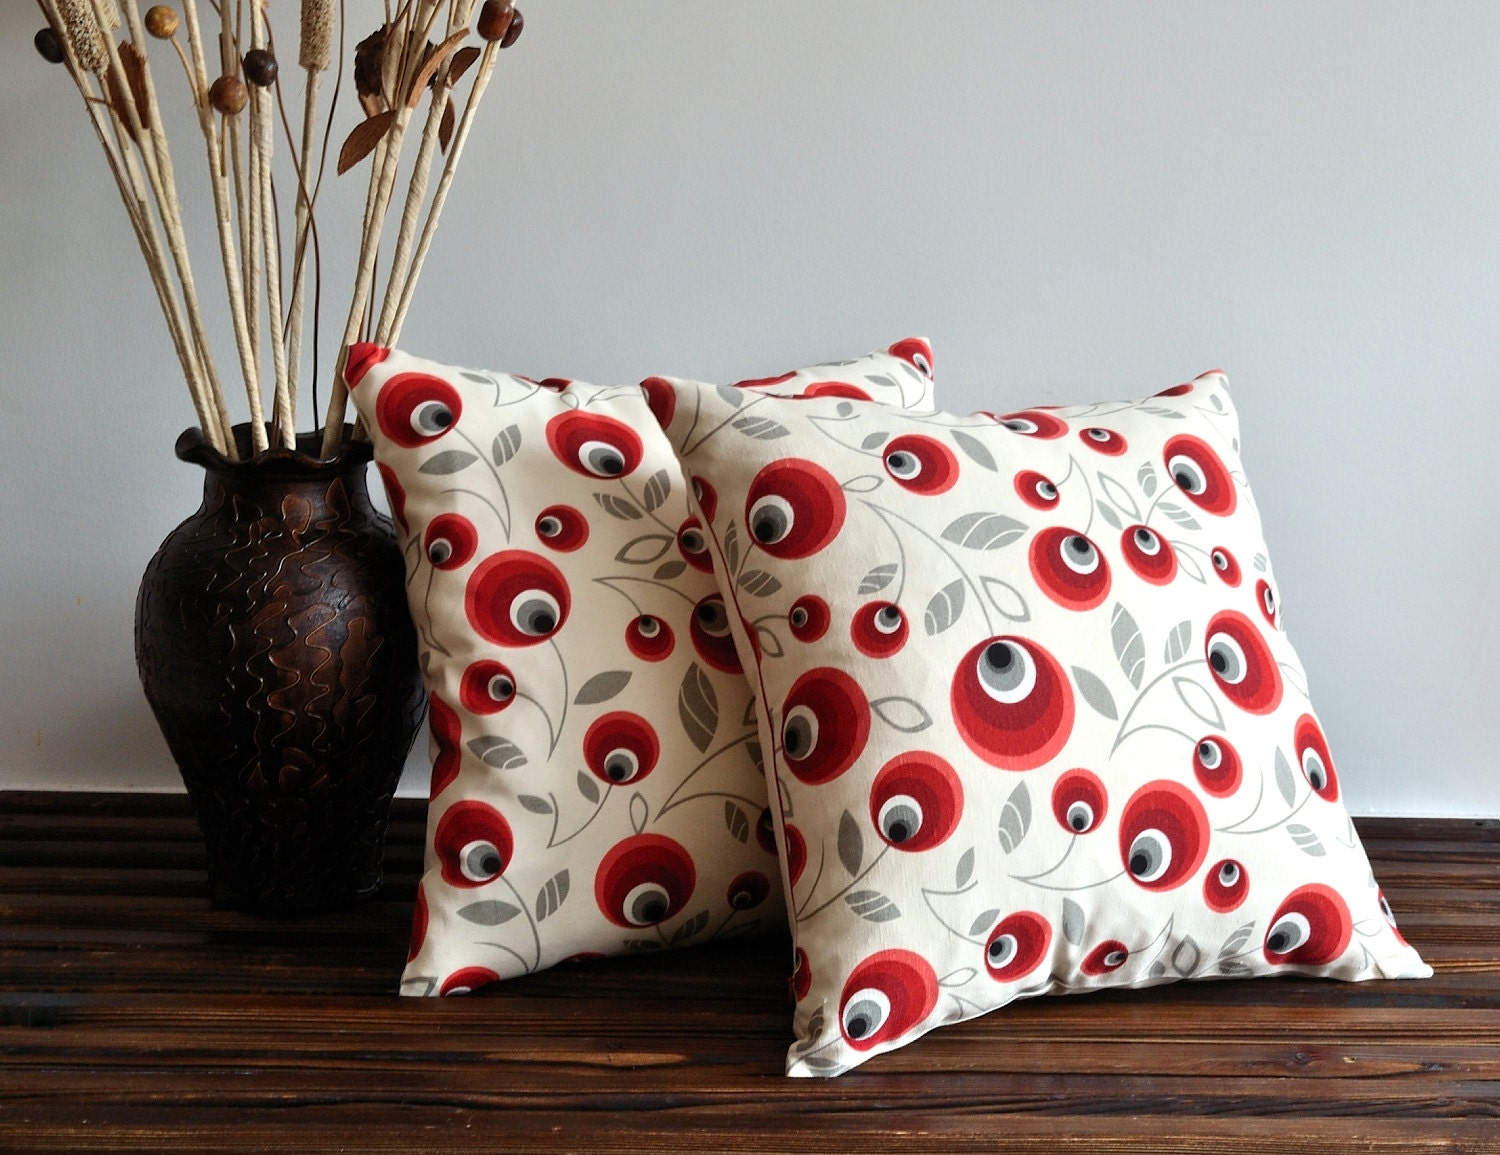 Decorative Pillow Covers 26x26 : 26x26 Pillow Cover Outdoor Decor Pillow Cover Decorative